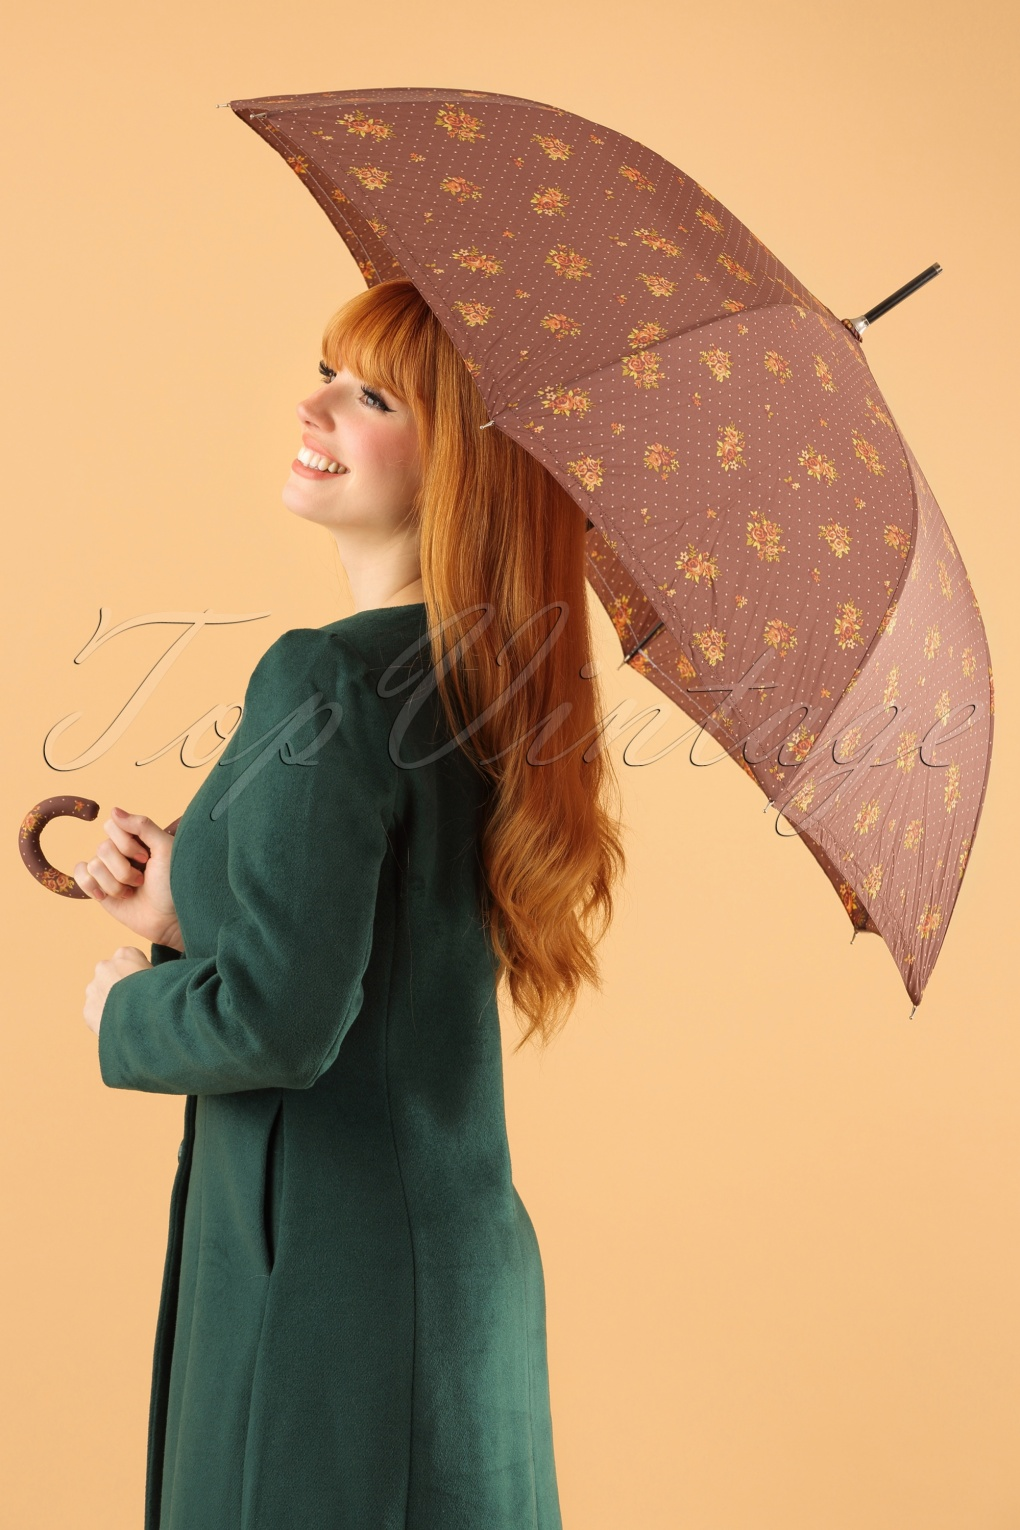 1960s Inspired Fashion: Recreate the Look 60s Retro Floral Umbrella in Bown £13.21 AT vintagedancer.com